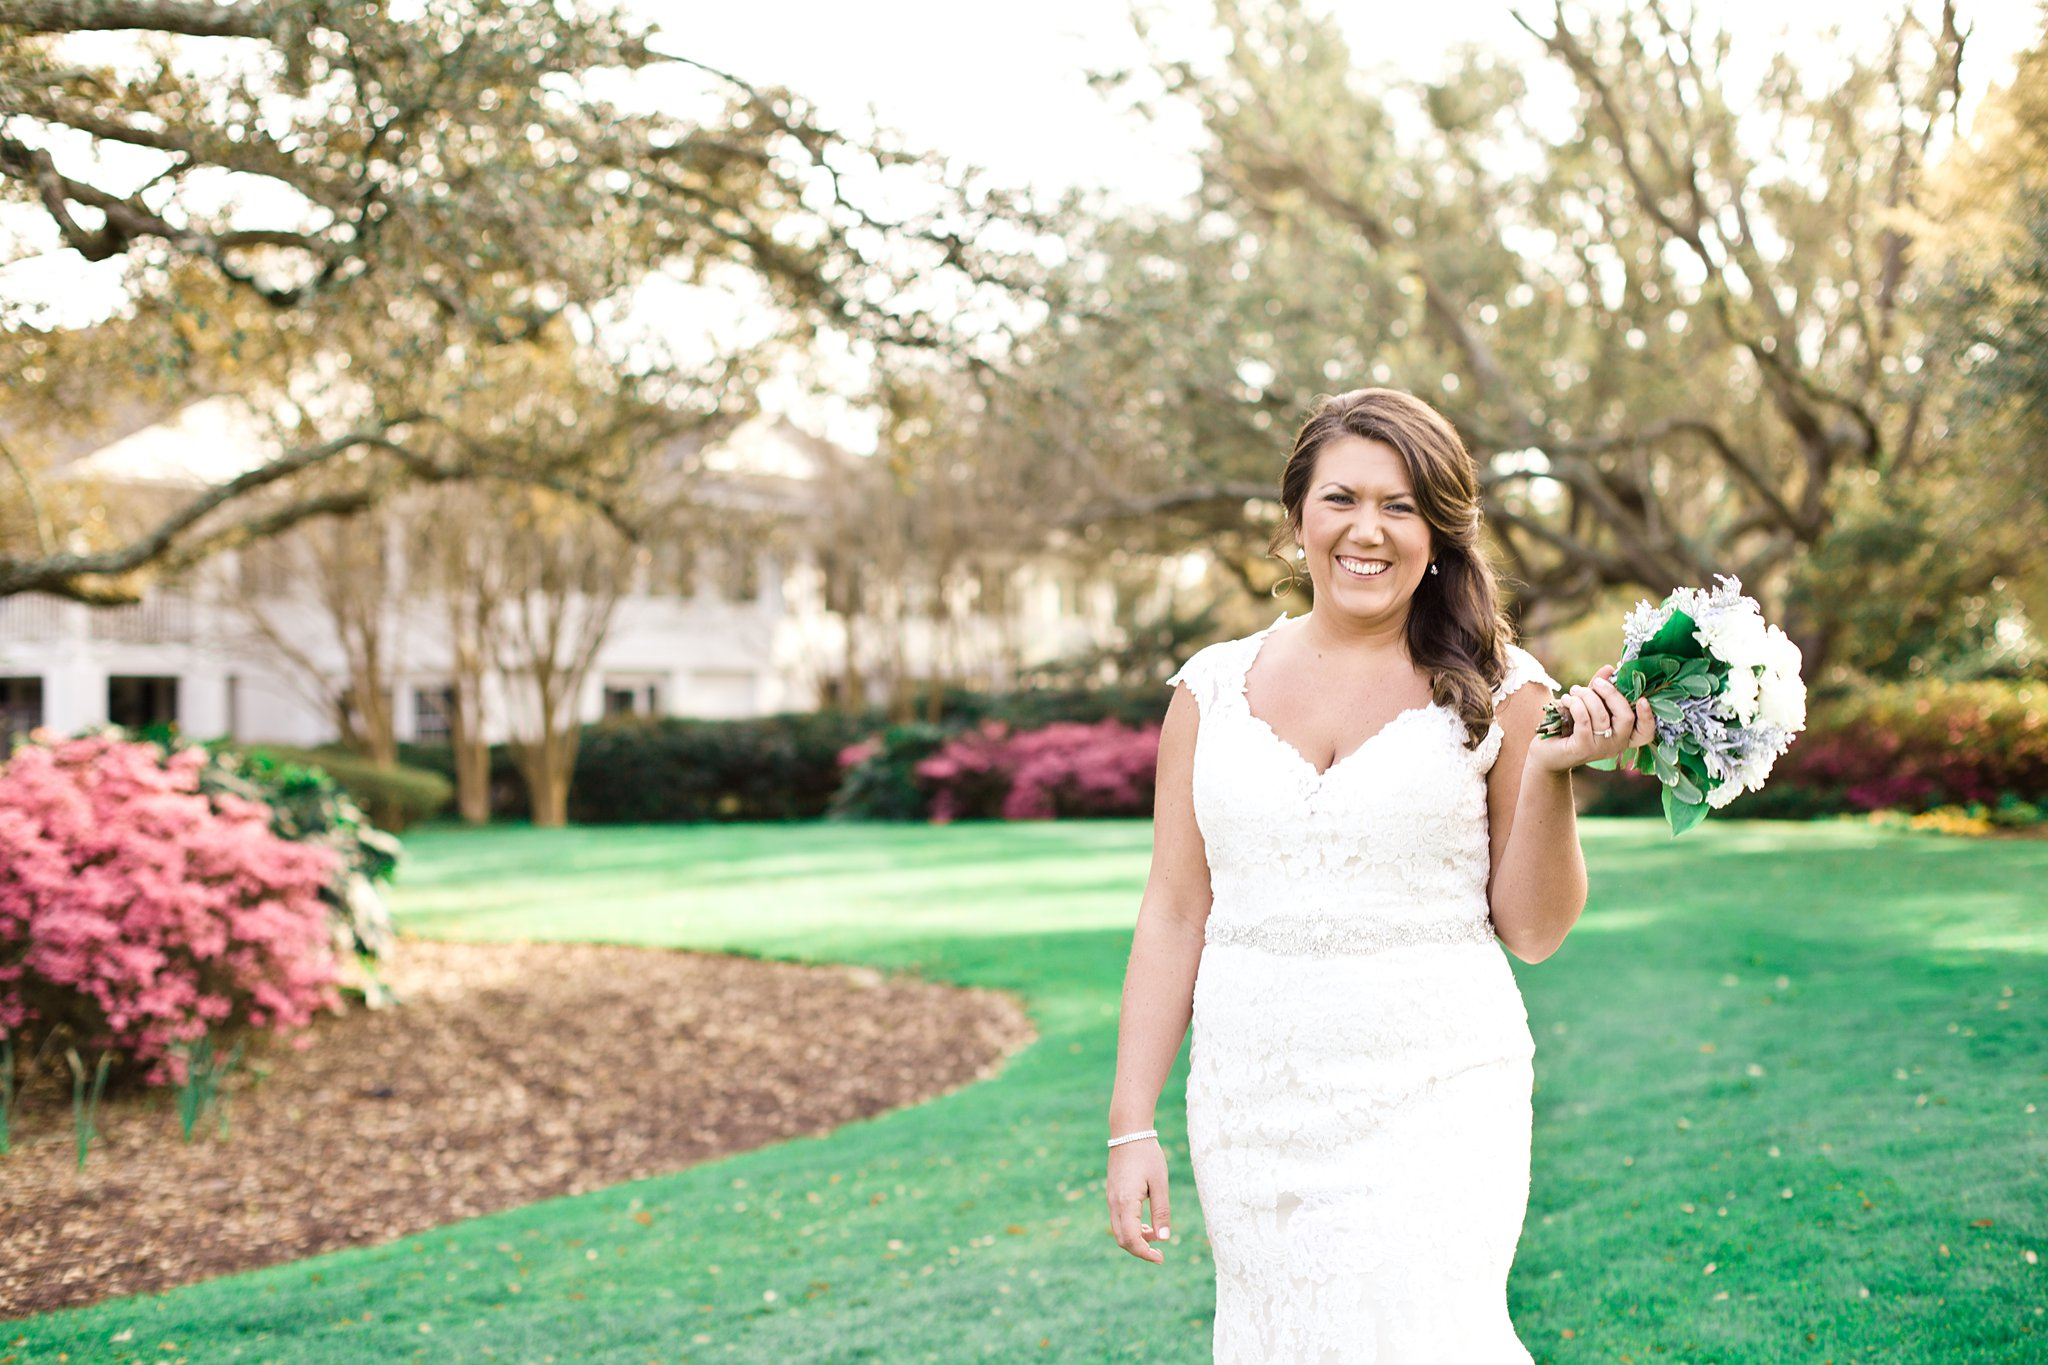 litchfield-golf-country-club-bridal-session-pawleys-island-sc-photos_0108.jpg